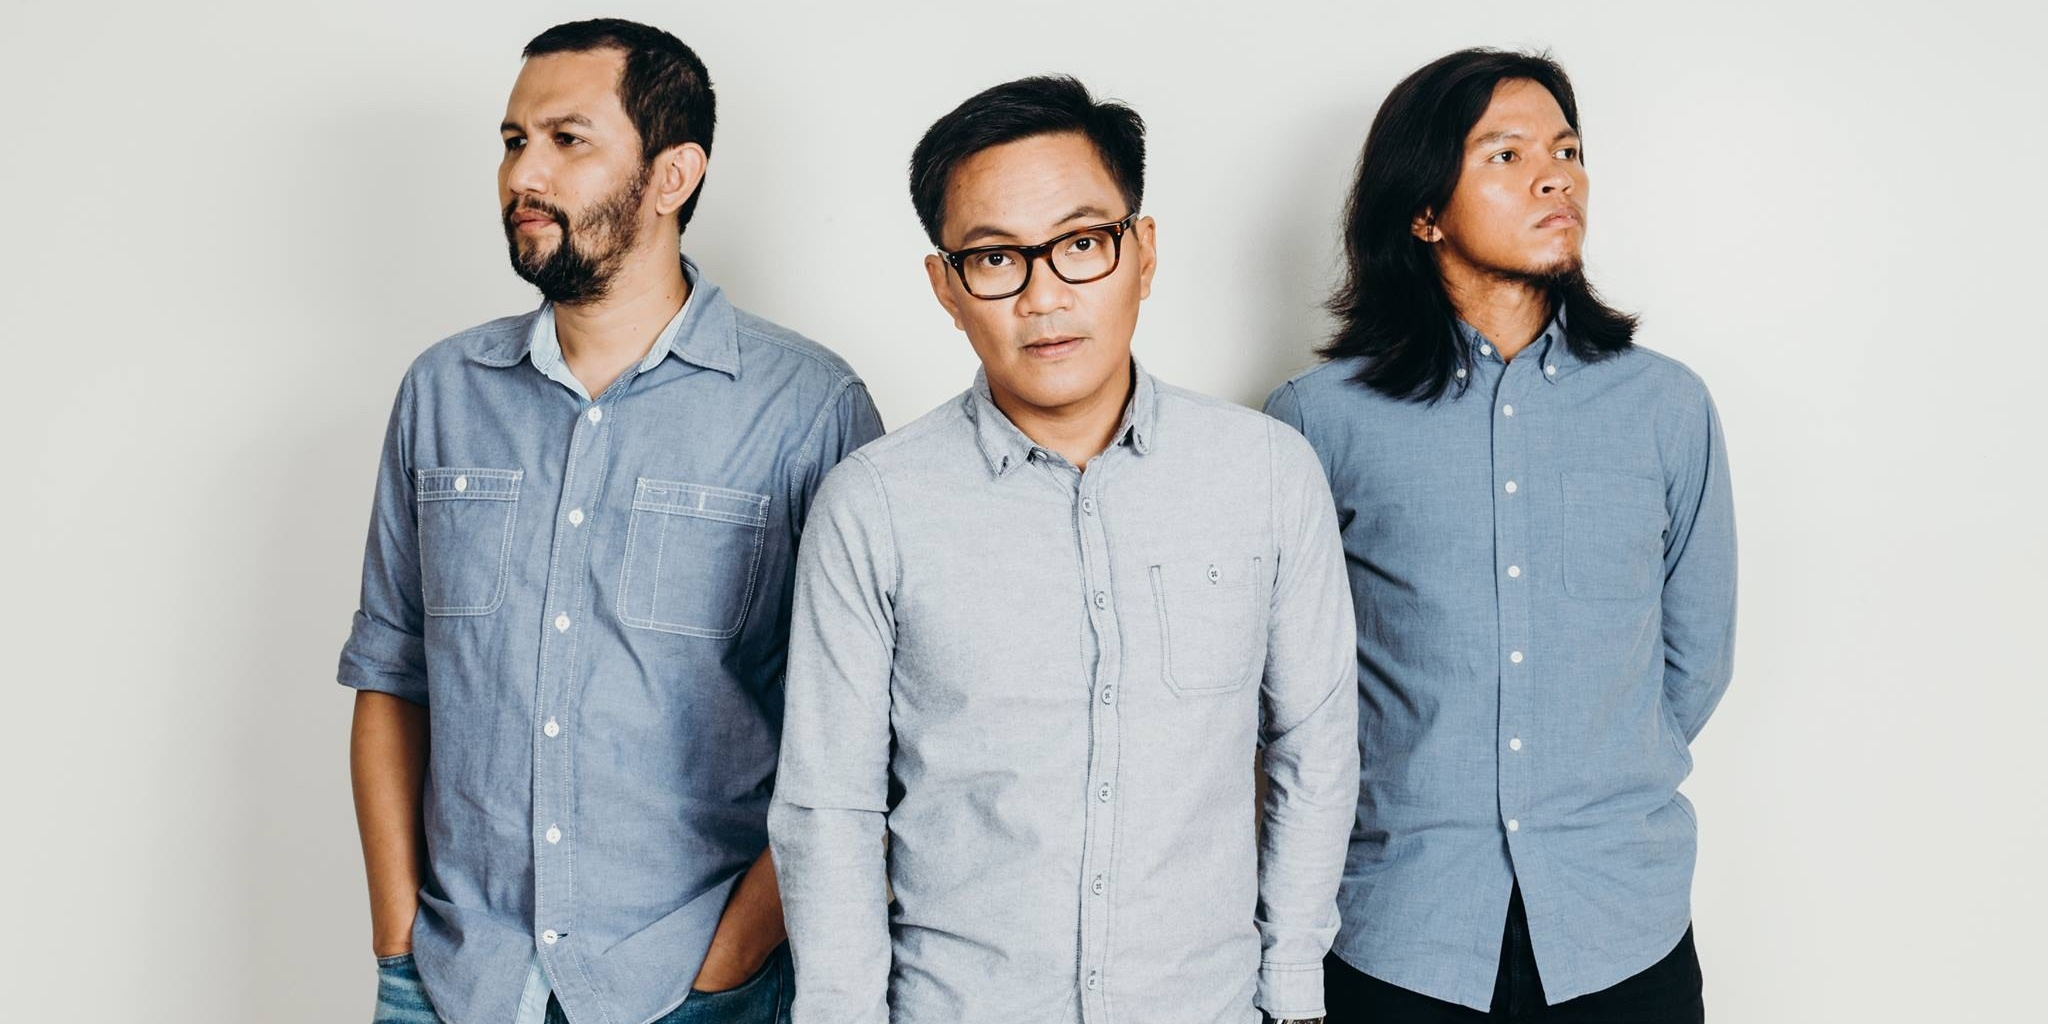 Ebe Dancel, Bullet Dumas, and Johnoy Danao come together for IISA